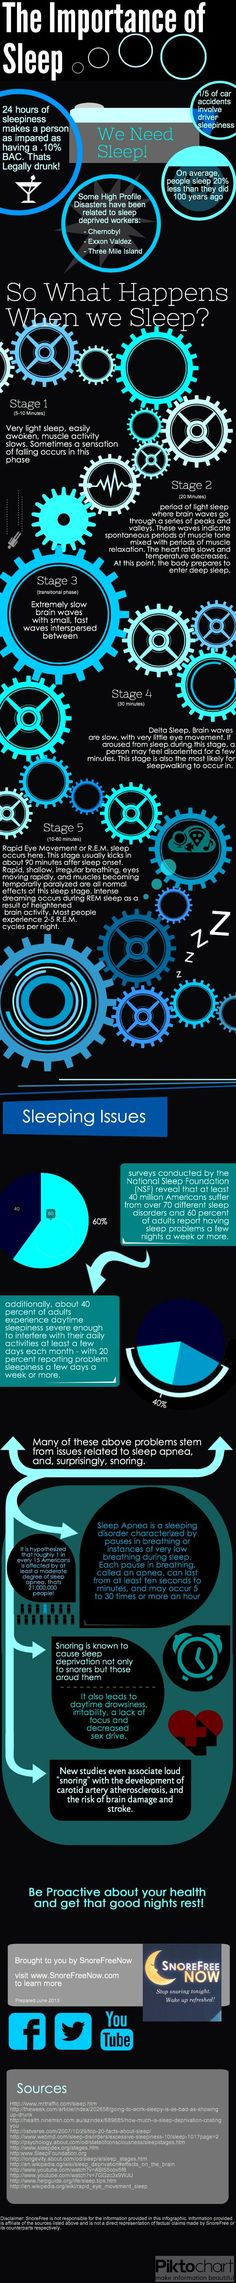 This pin is relevant because it shows how important sleep is and goes through each step of what happens in our bodies when we sleep.